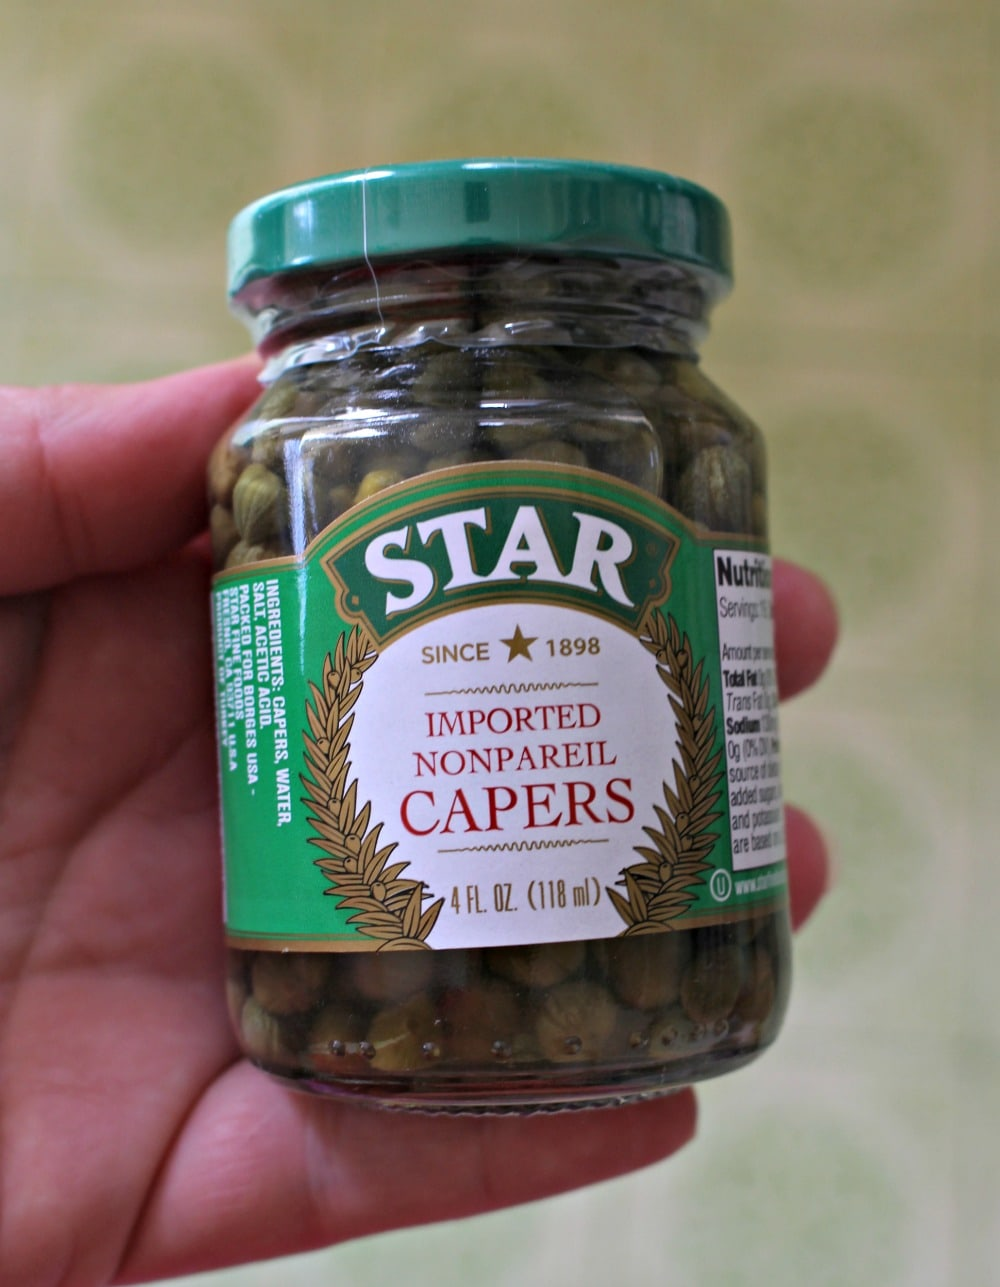 Hand holding a jar of capers